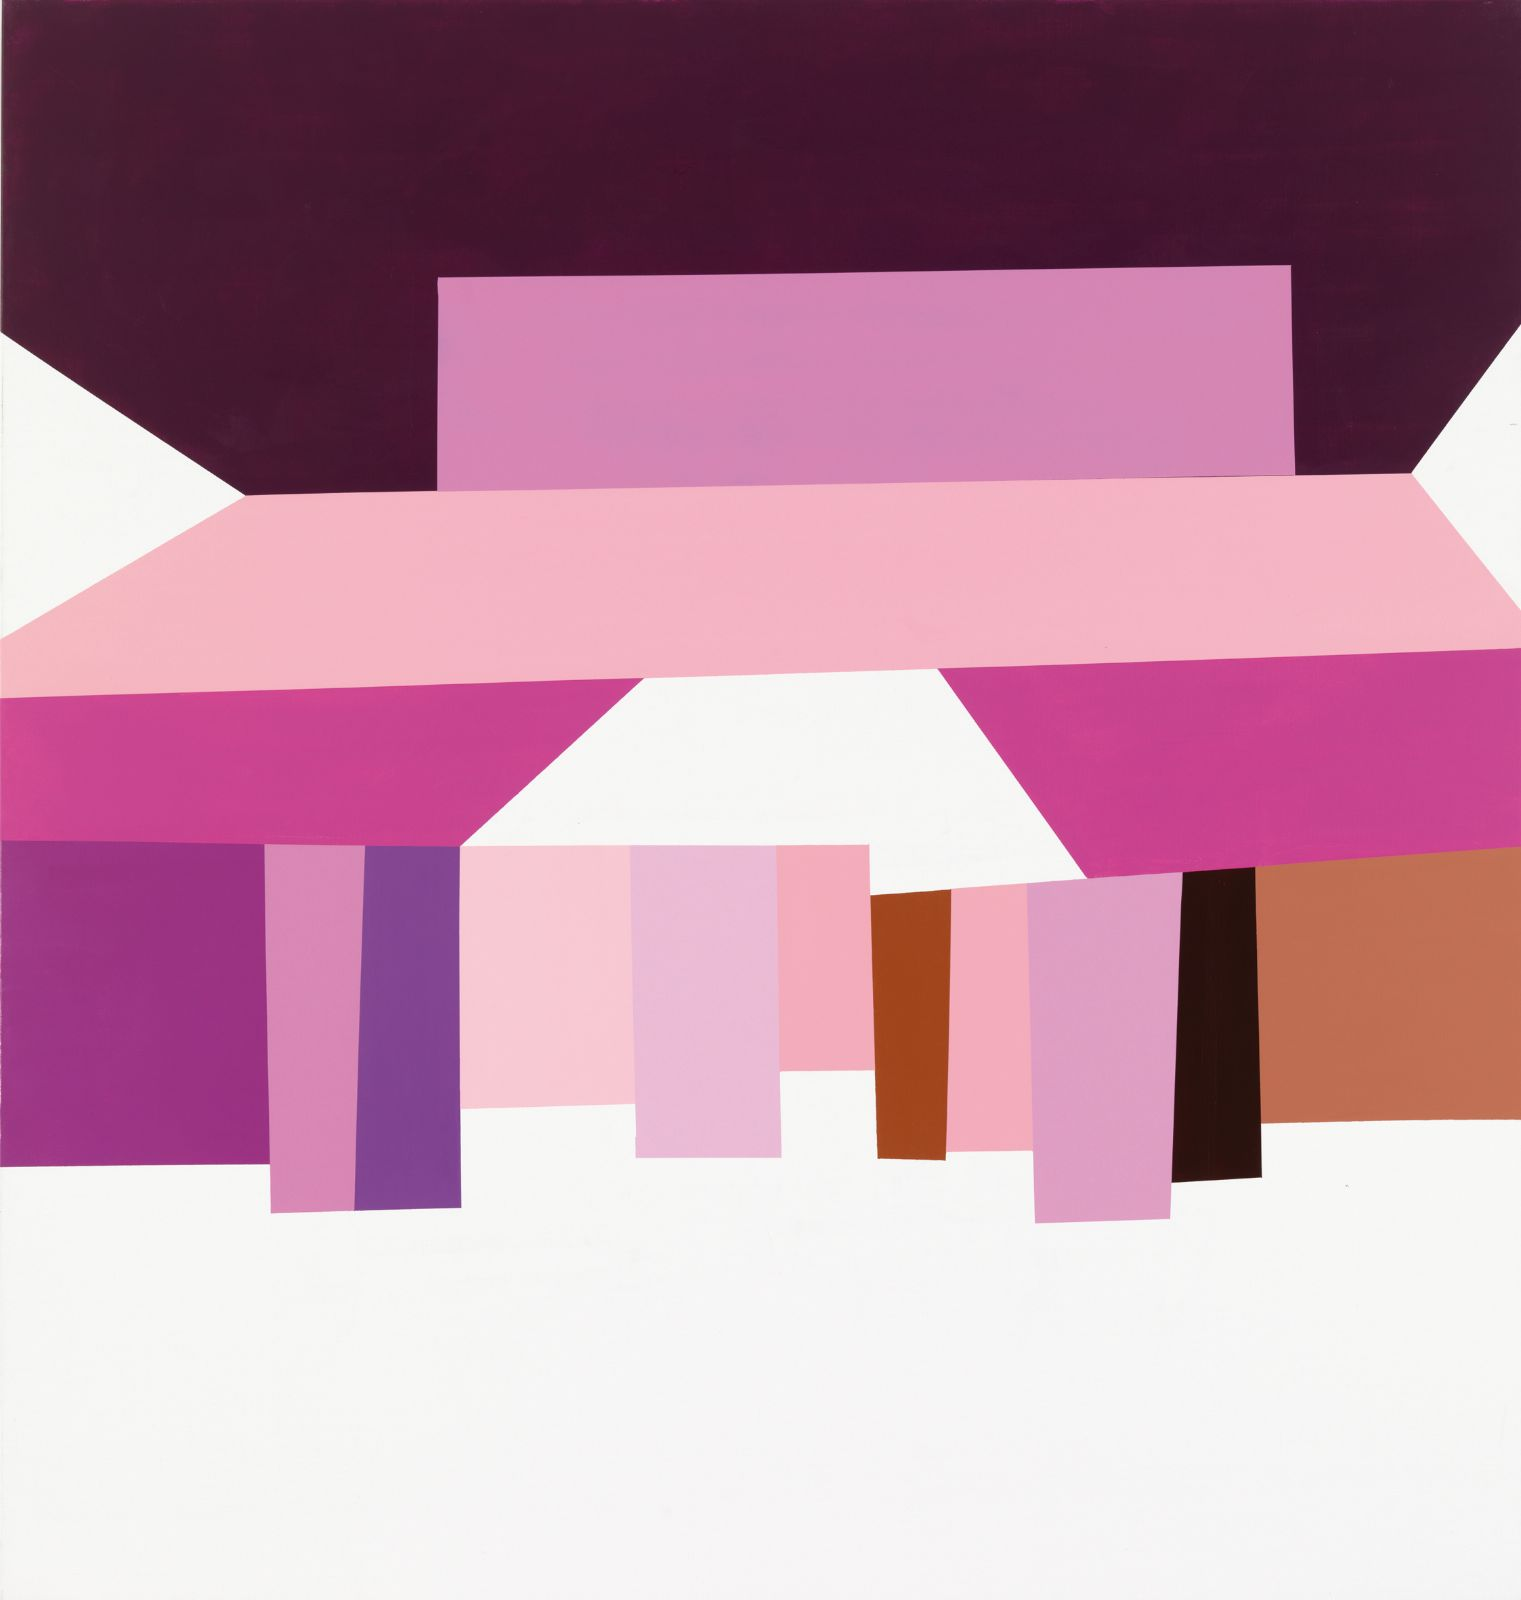 Panorama/Recognition, 2008-09, acrylic on canvas,195 x 185 cm